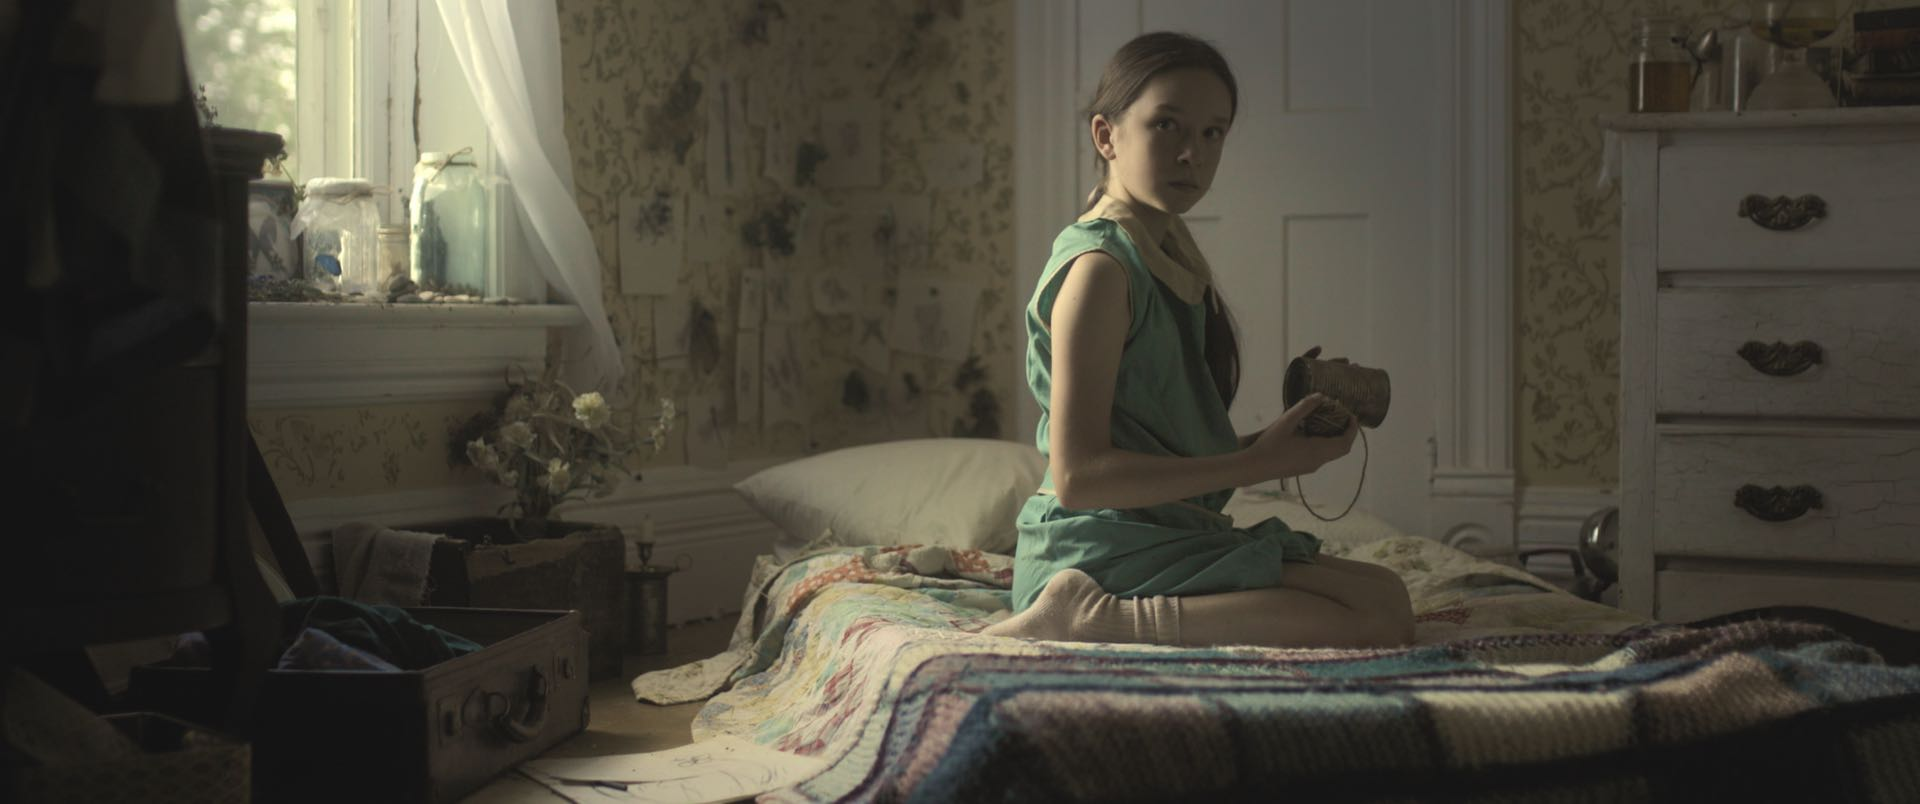 Still image from the short film Wild. Cinematographer and Colorist Morgana McKenzie